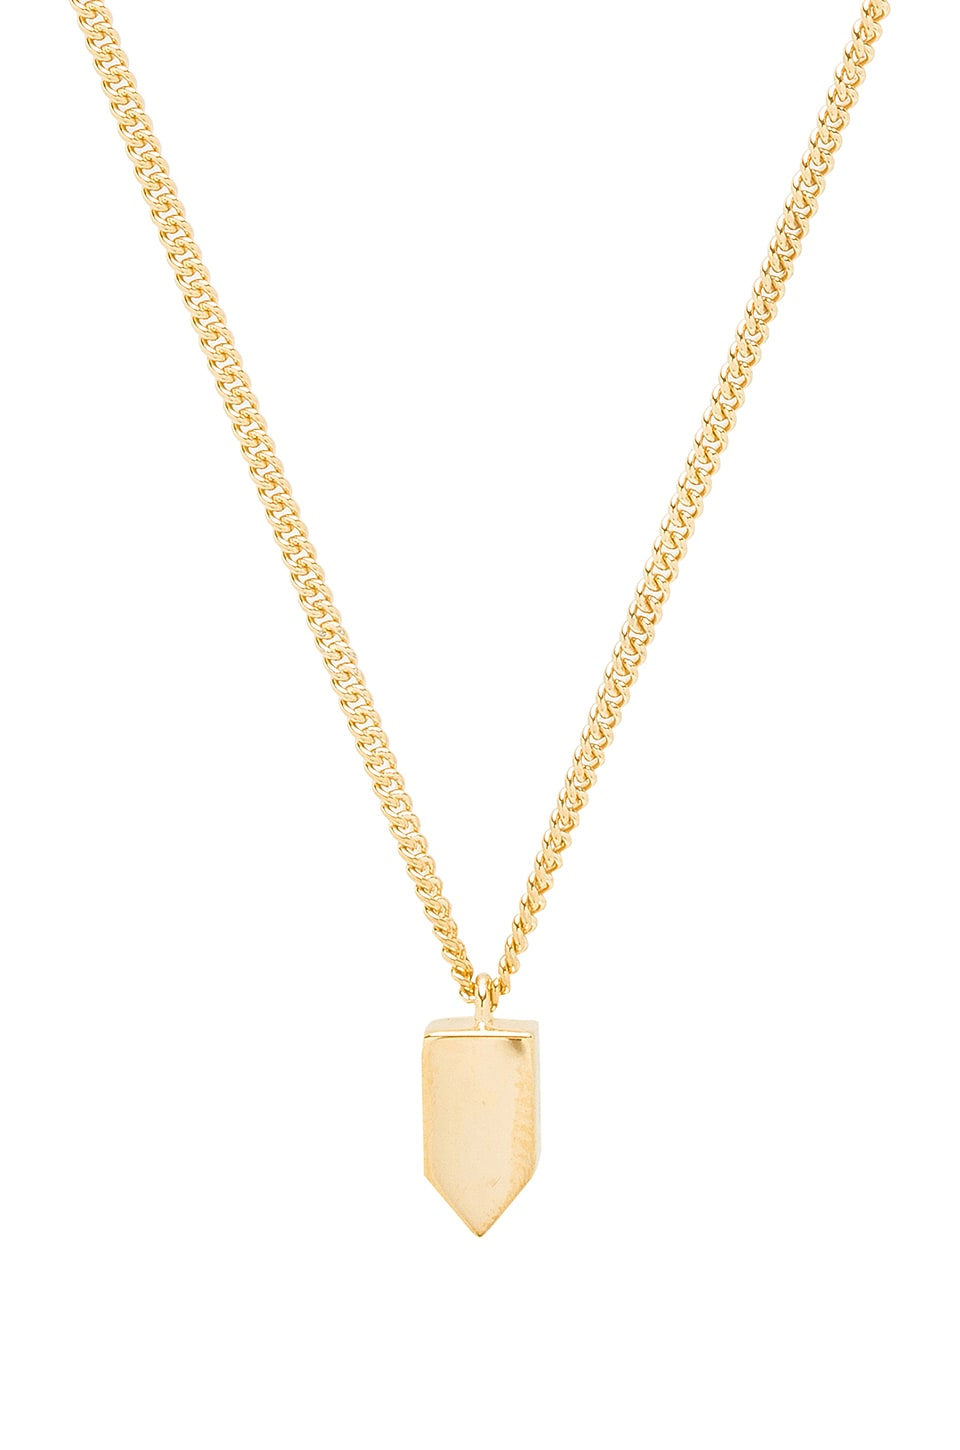 c hughes apc a products trouva p necklace